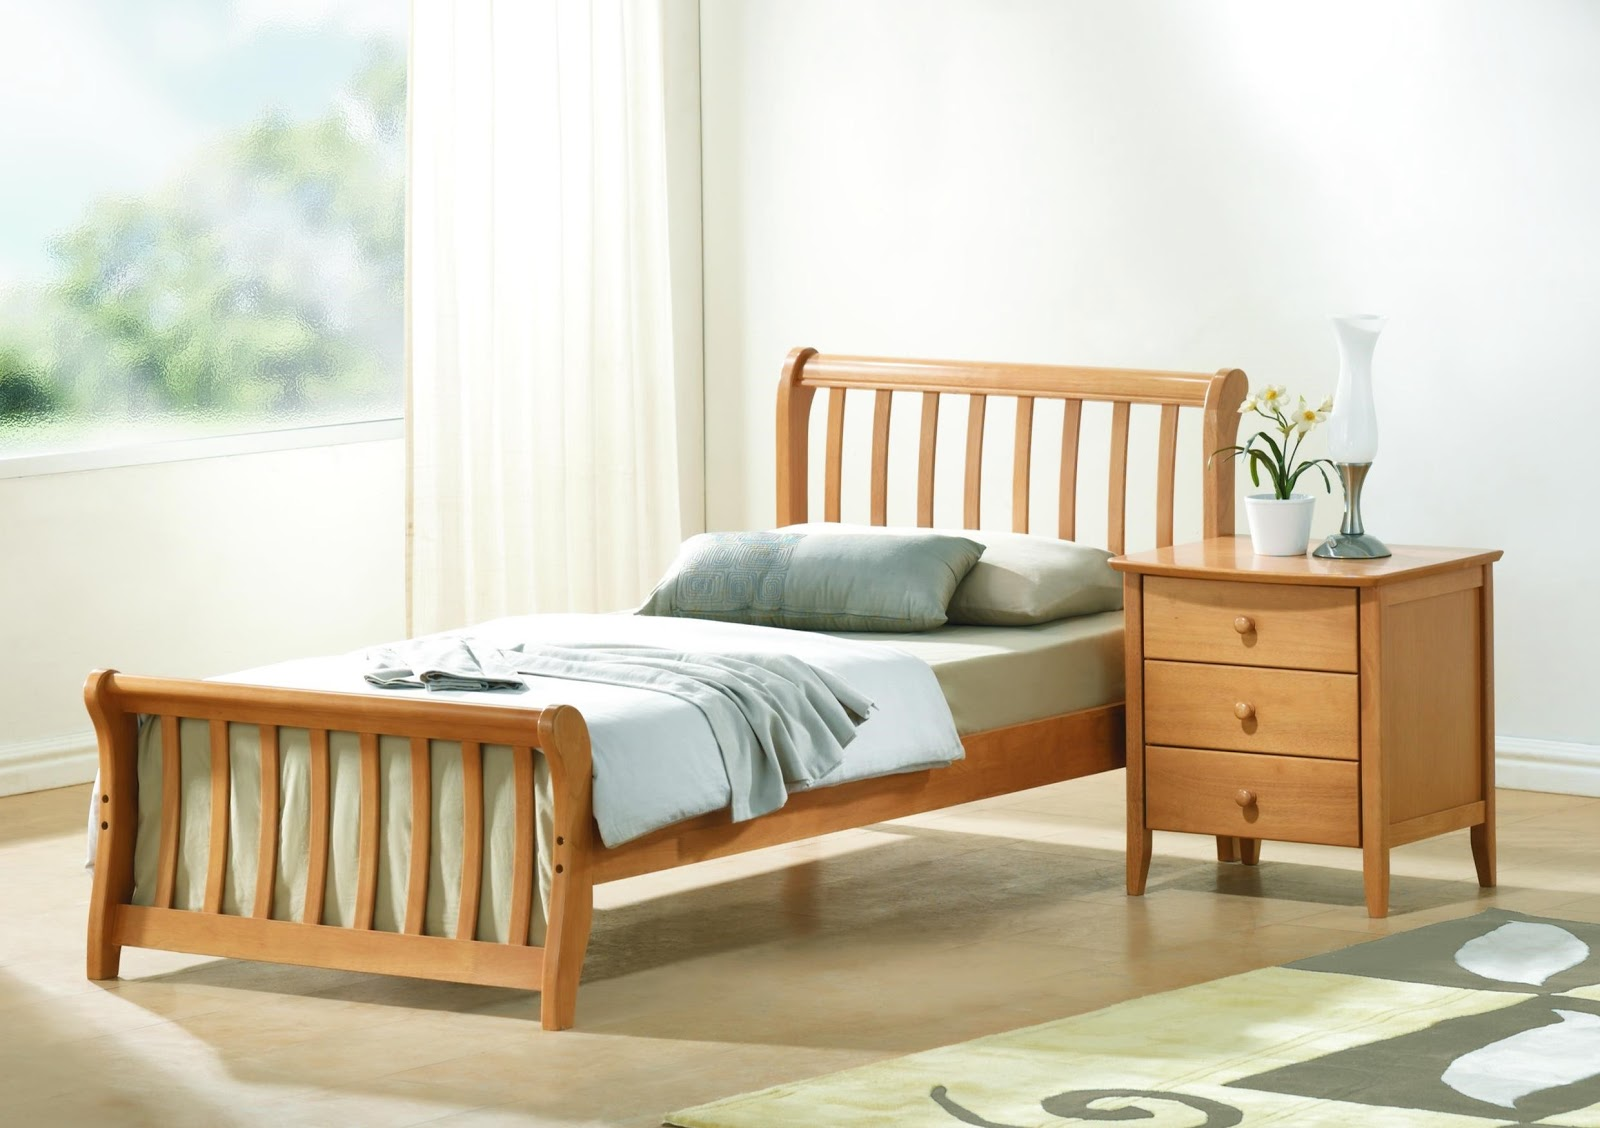 foundation dezin decor sleep well single bed